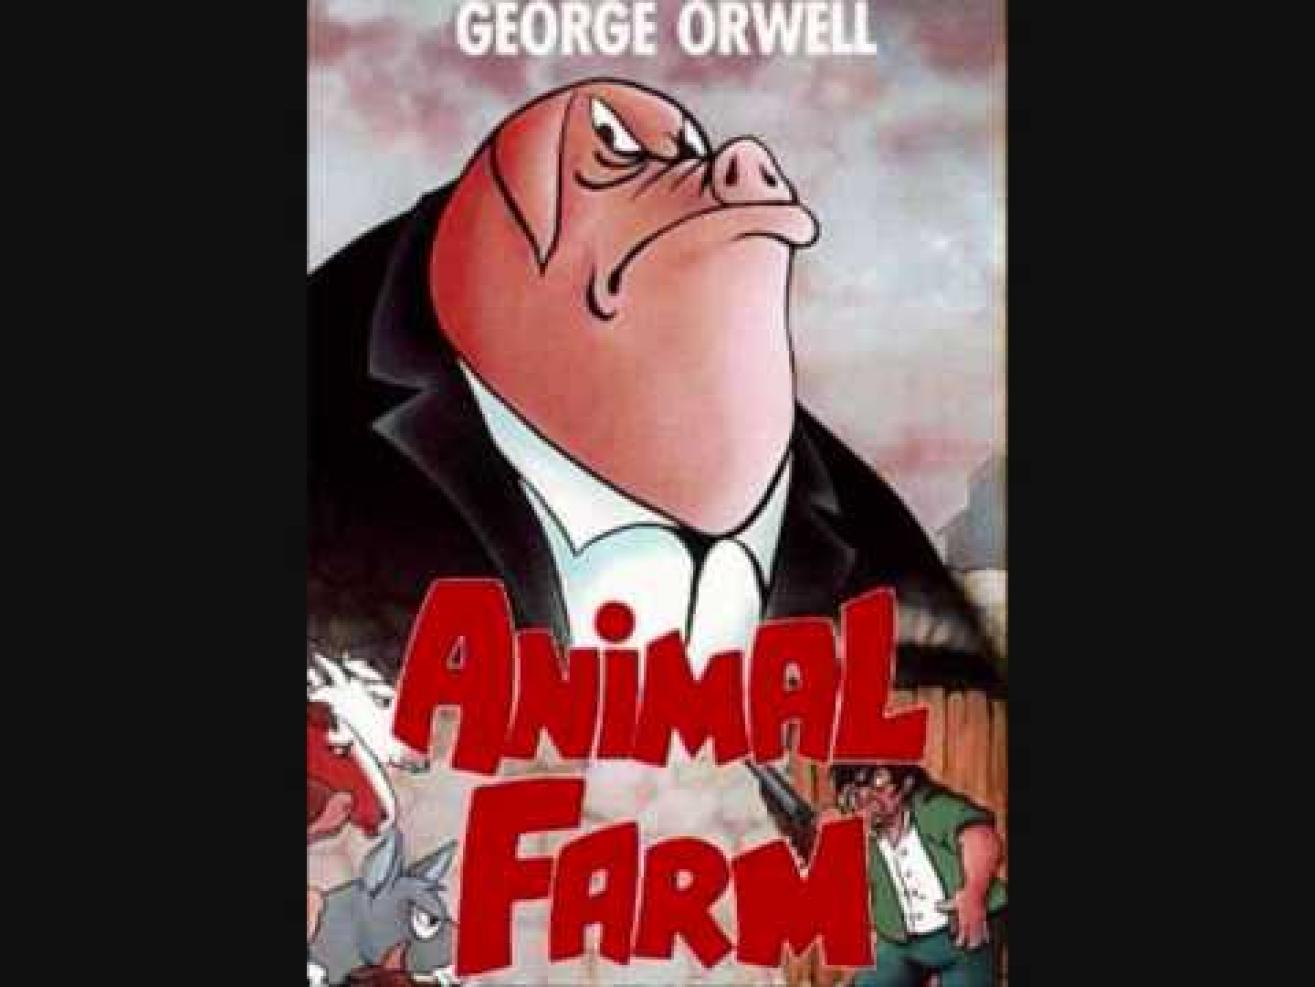 Snowball Quotes From Animal Farm With Page Numbers: Boxer Animal Farm George Orwell Quotes. QuotesGram